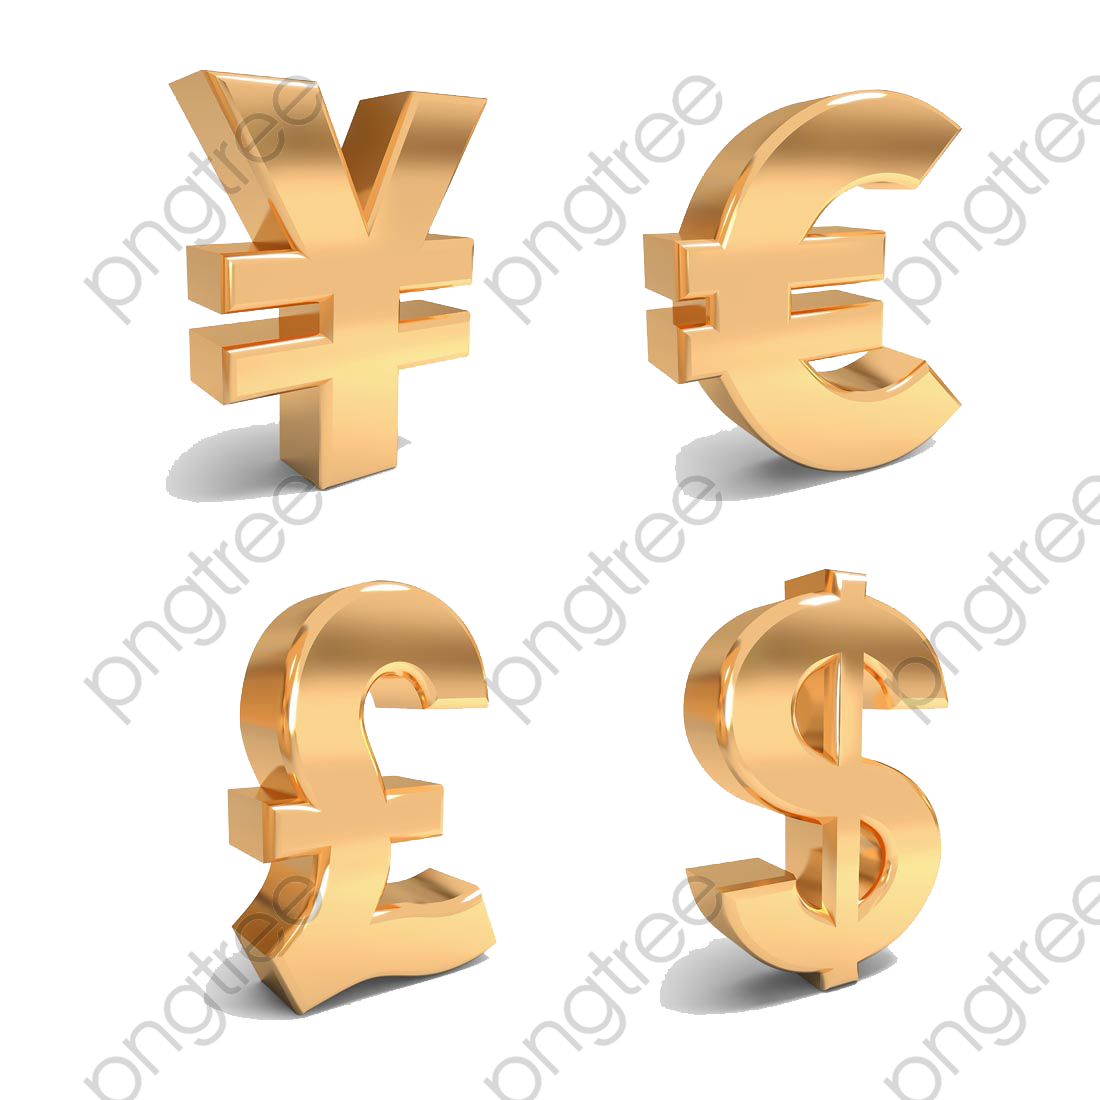 Us Dollar Euro Currency Symbol Png Clipart